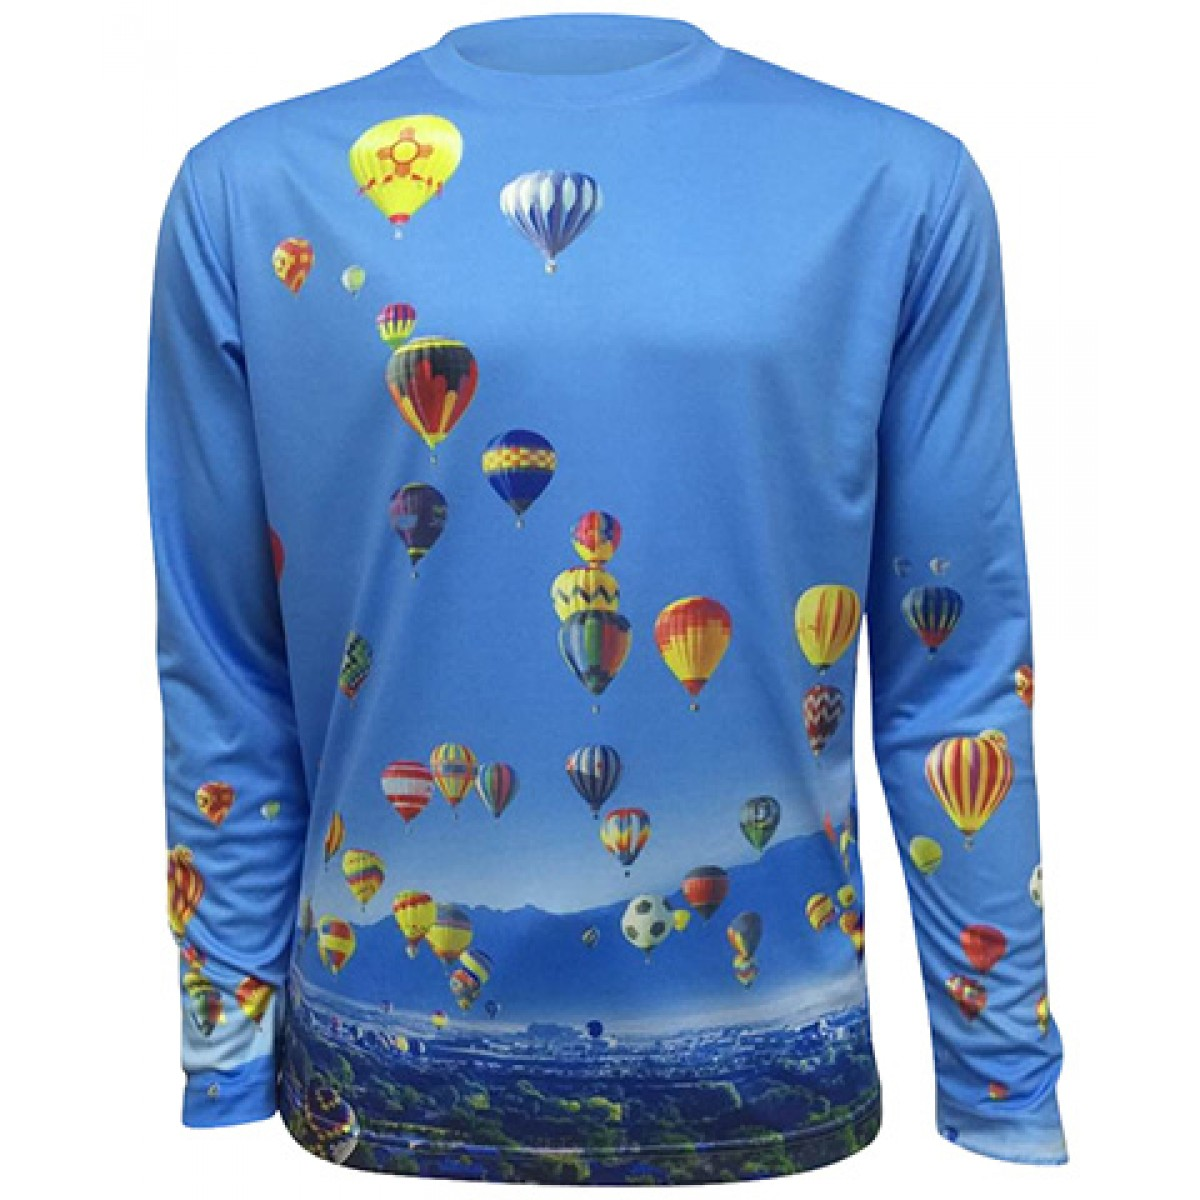 AIBF Sublimated Long Sleeve-Blue-YS